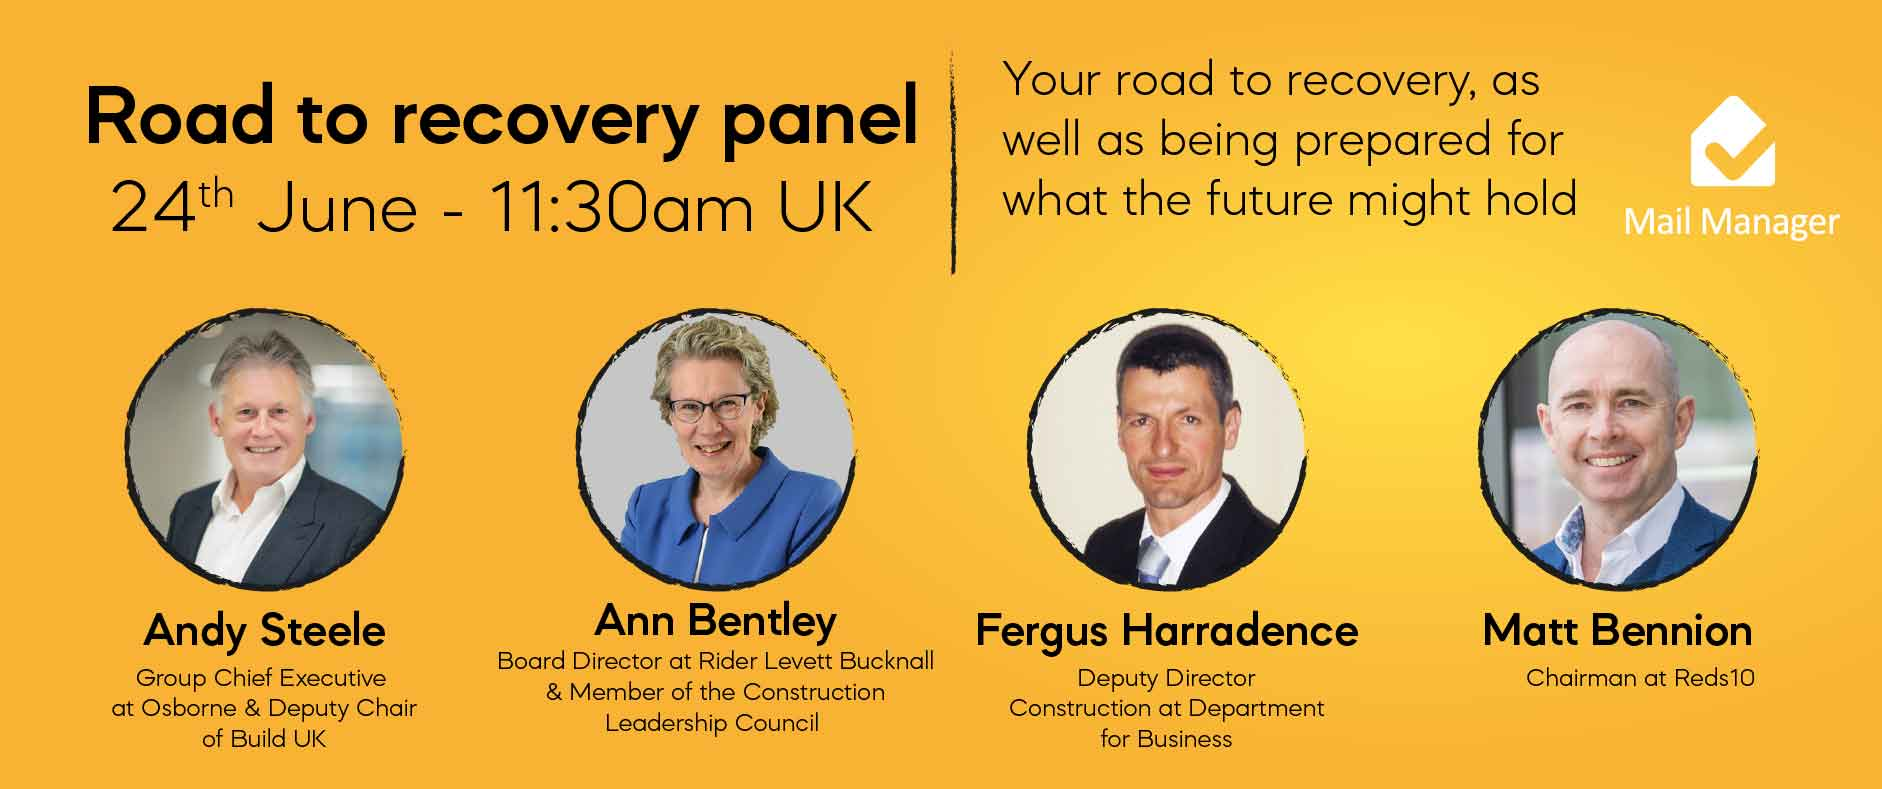 road to recovery_panellists-06